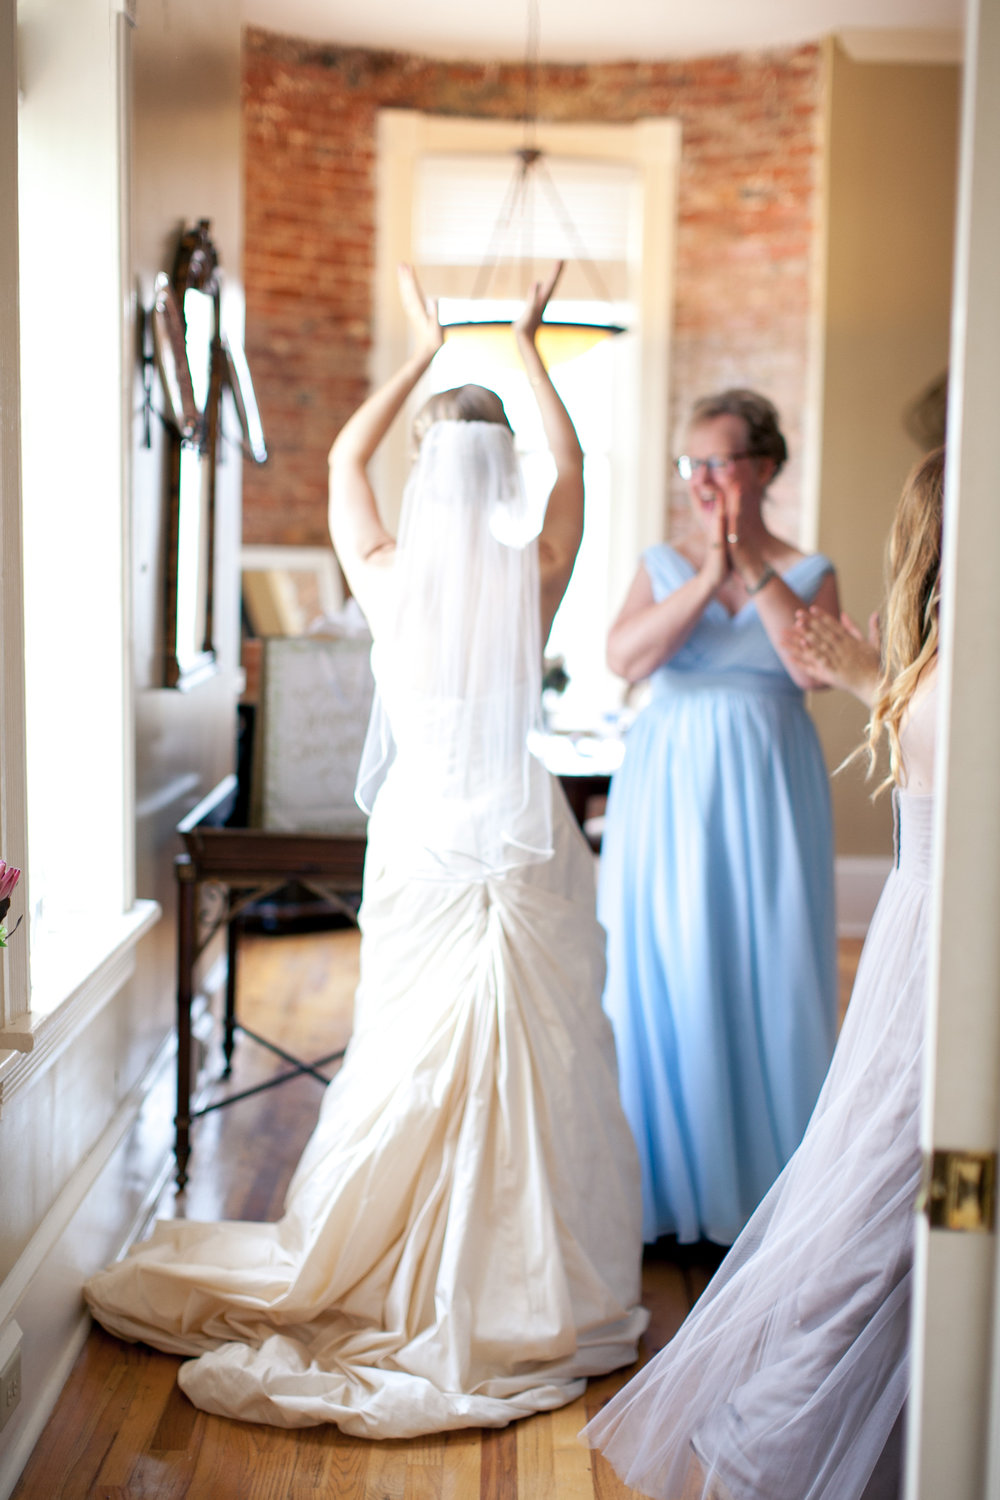 Bridal prep should be so fun for all brides. You can't even see Elena's face and her spirit radiates in this photo by Kaitie Bryant.